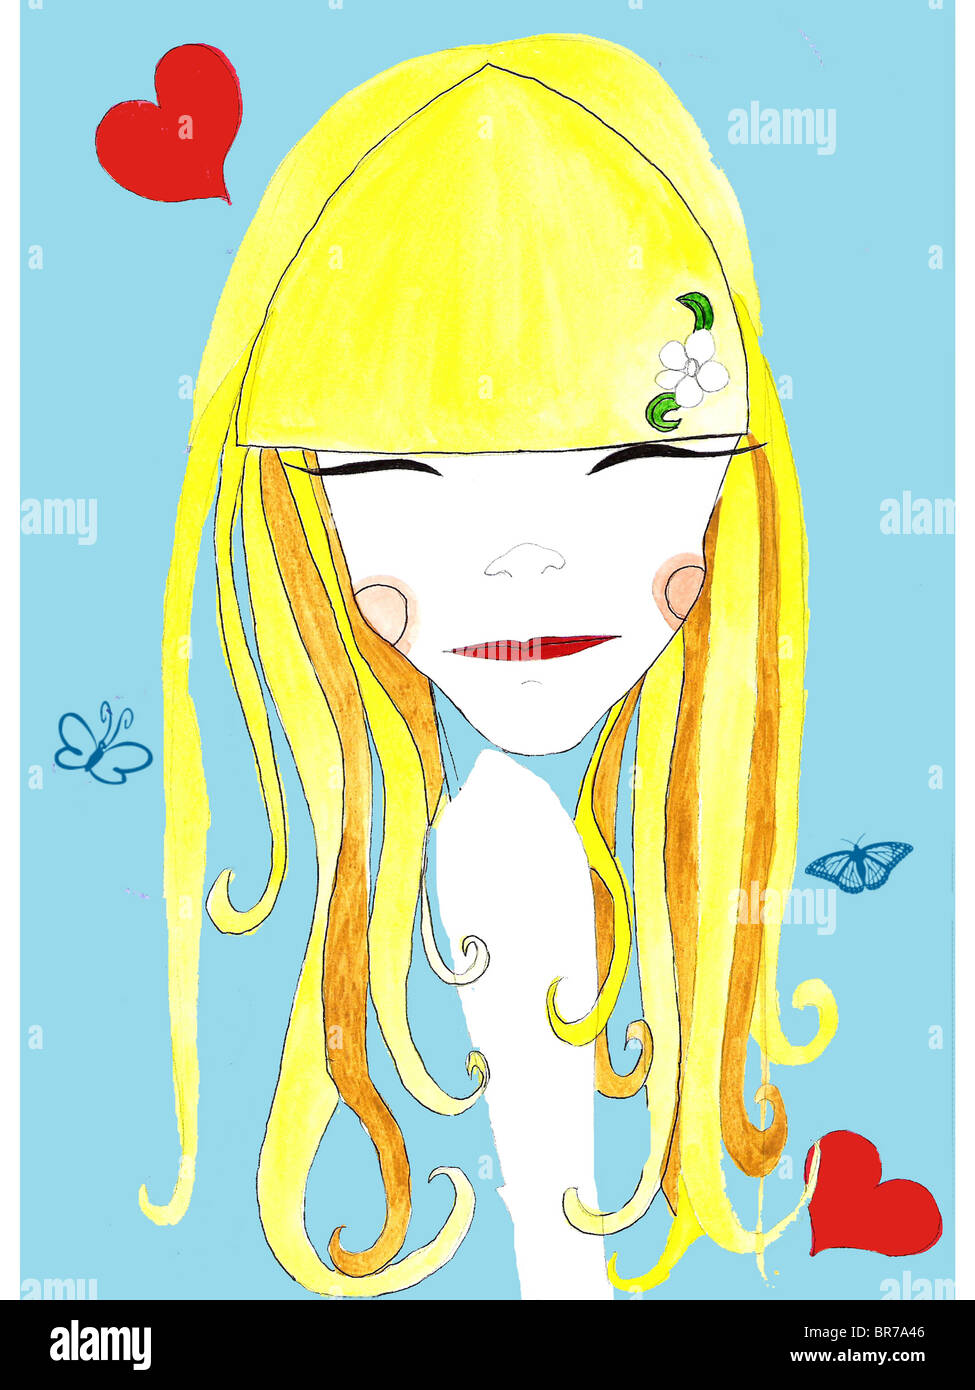 A blond-haired girl surrounded by hearts and butterflies - Stock Image